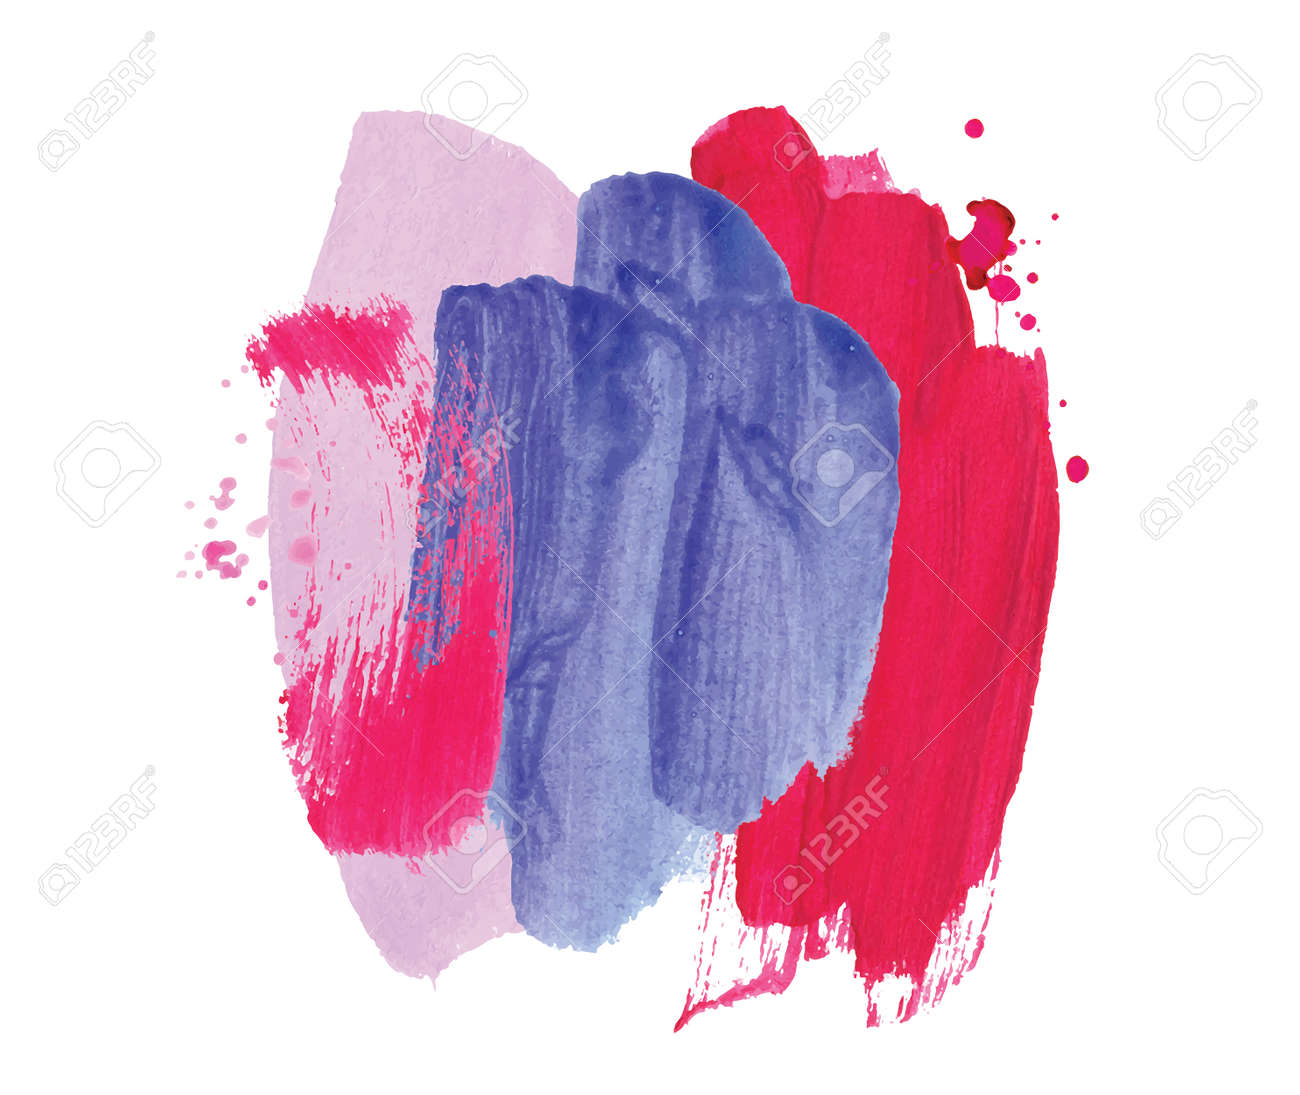 Absract design watercolor brush strokes composition hand drown - 169282015